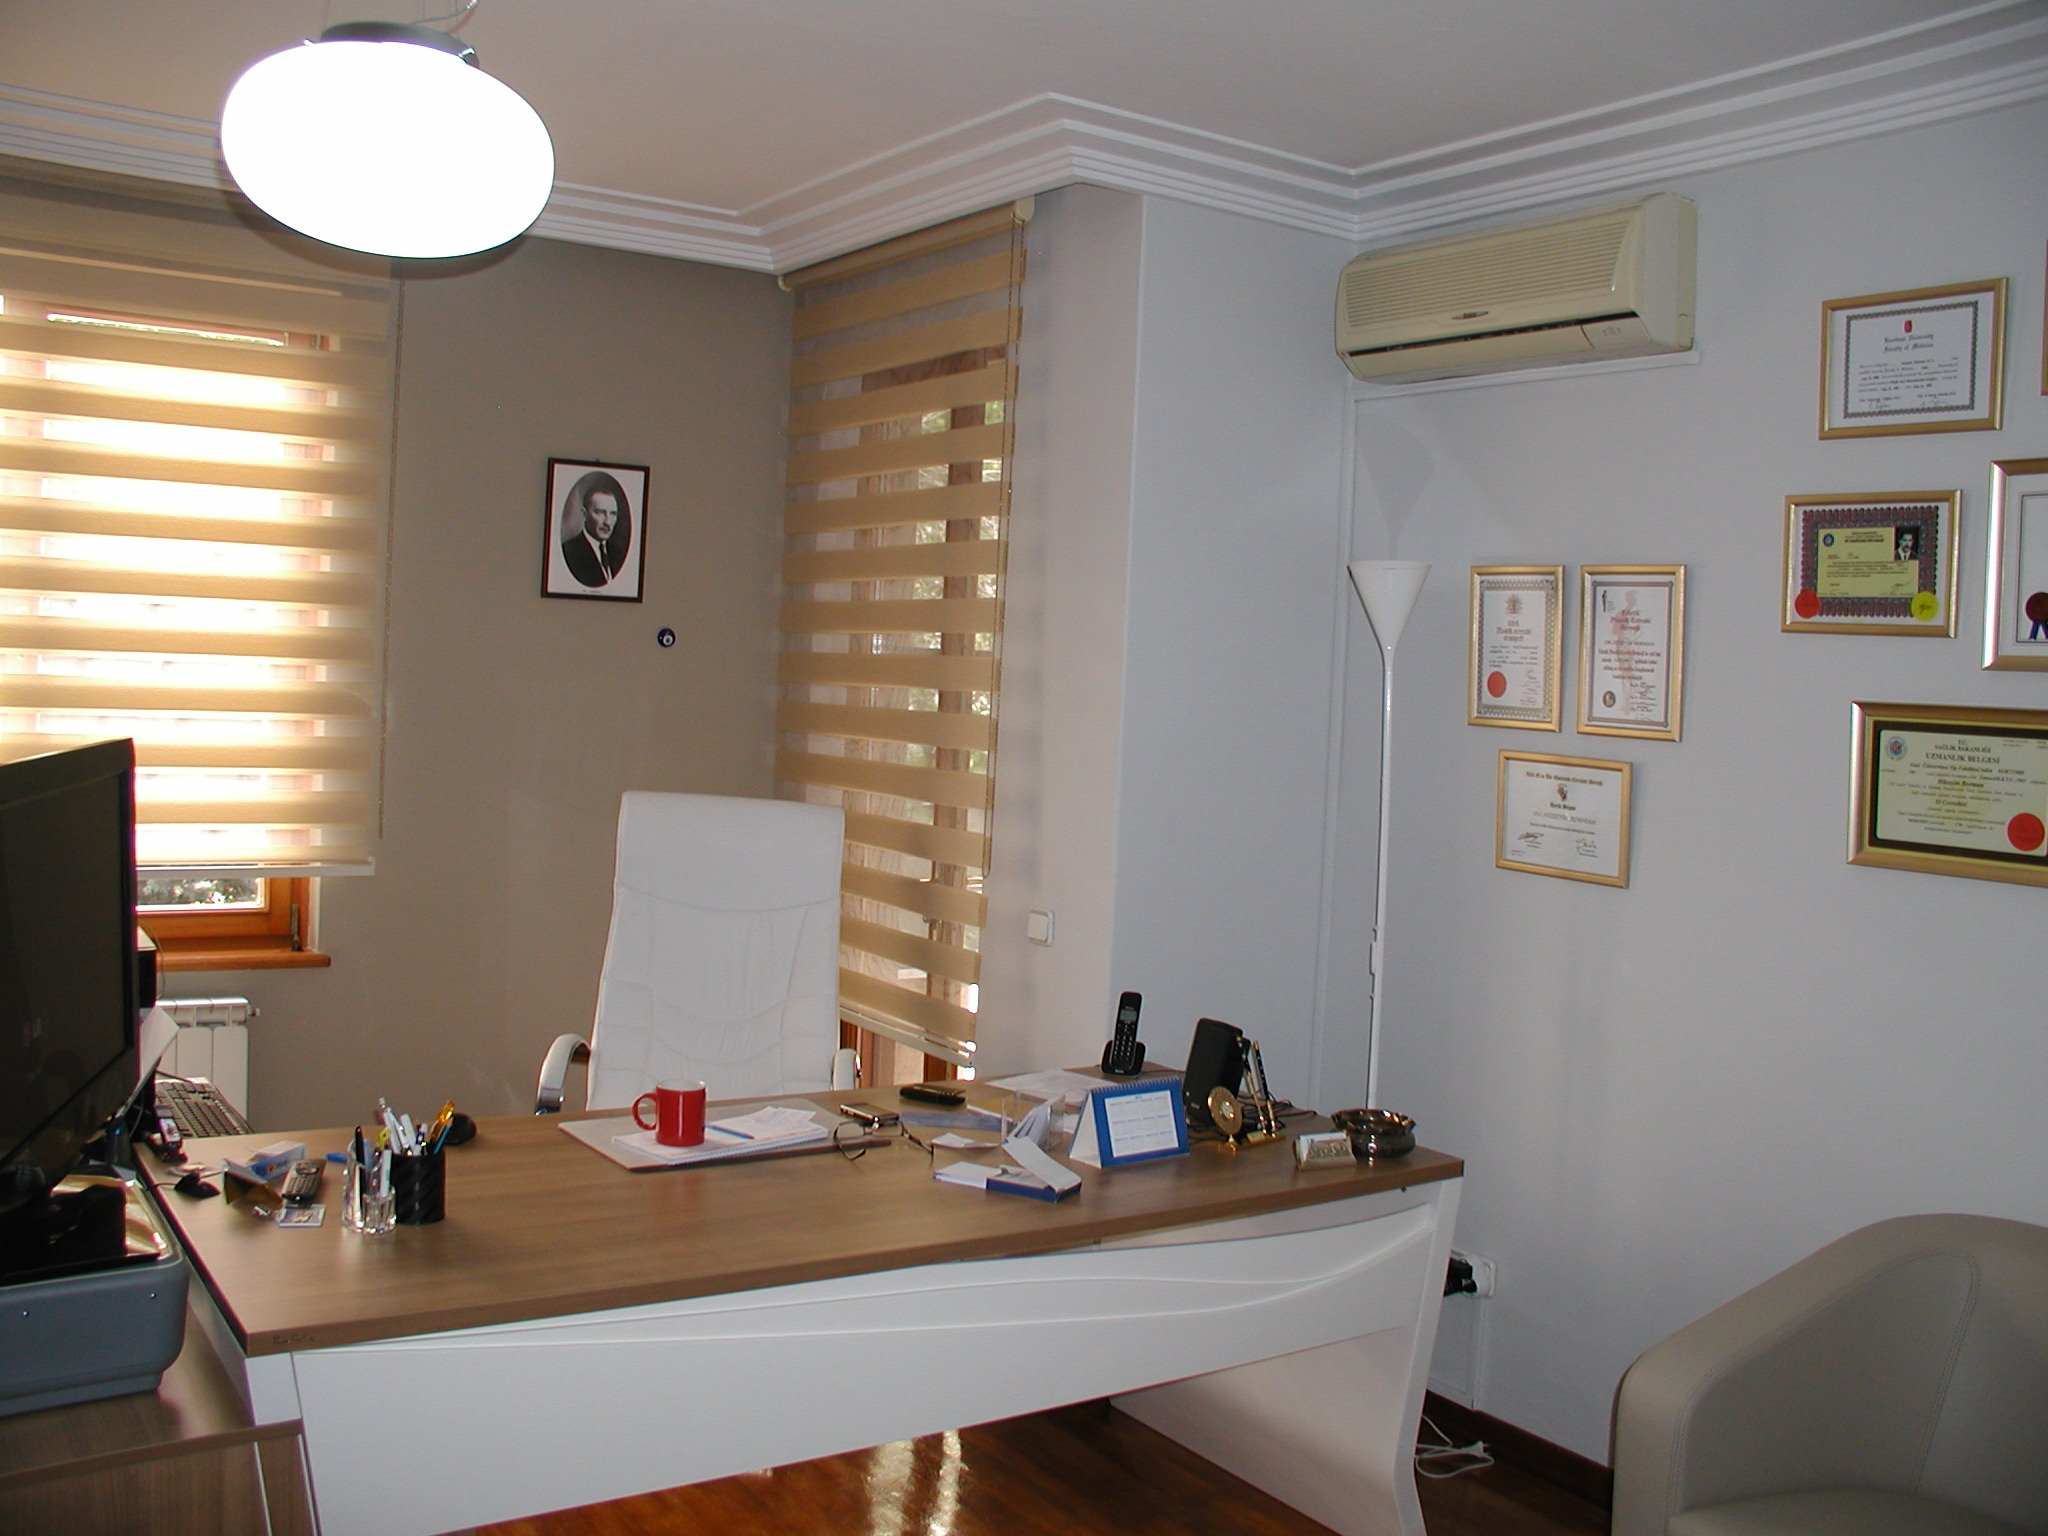 Hb-Aesthetic, Plastic Surgery Clinic gallery - picture 4